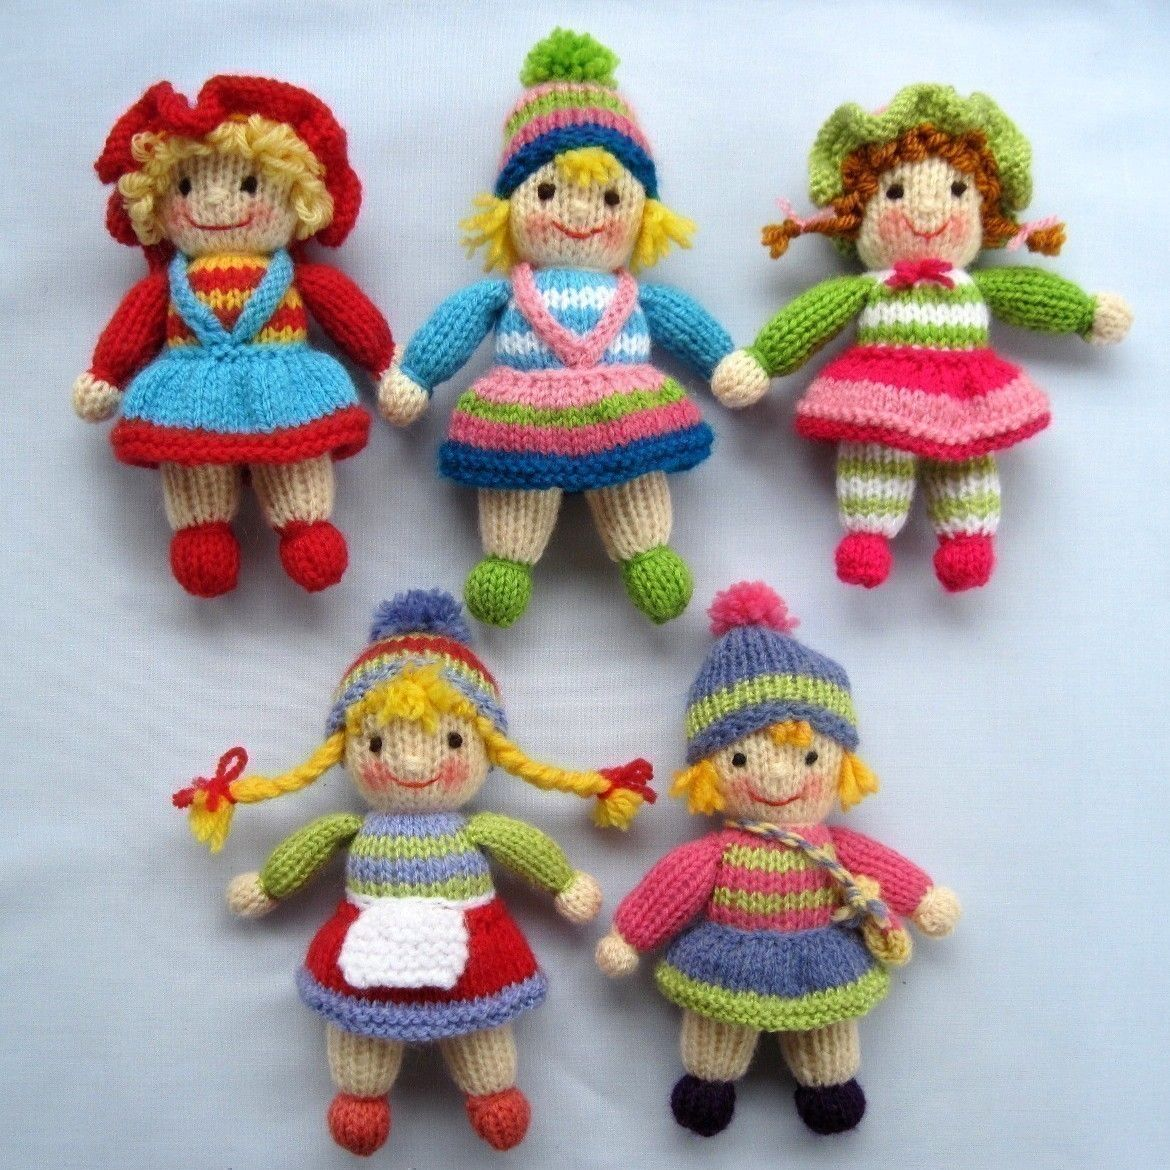 Knitting Patterns Toys Free Downloads : Jolly tots toy dolls instant download pdf email